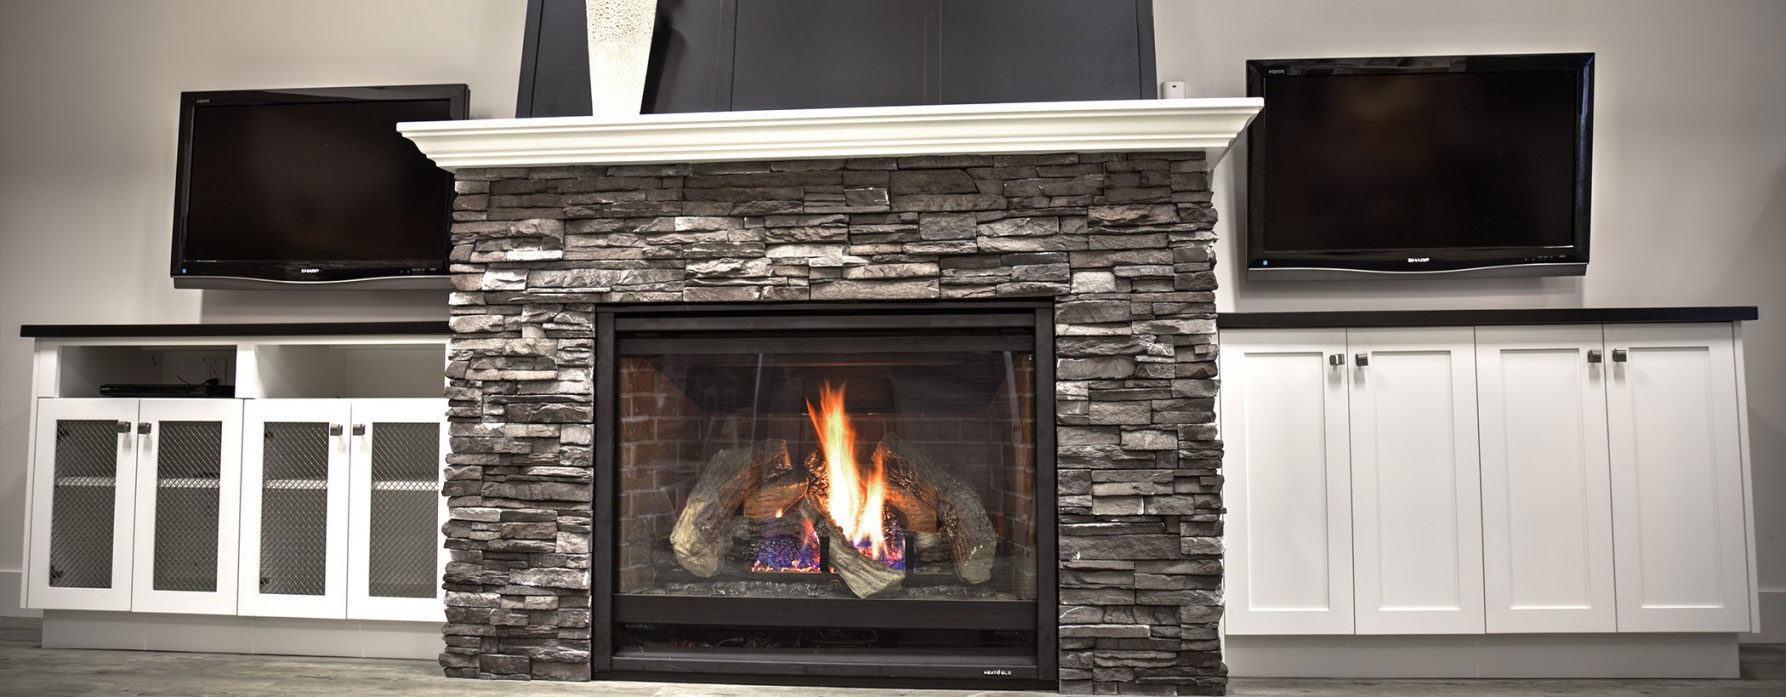 Fireplace Specialties - Fireplaces, Stoves & Barbecues